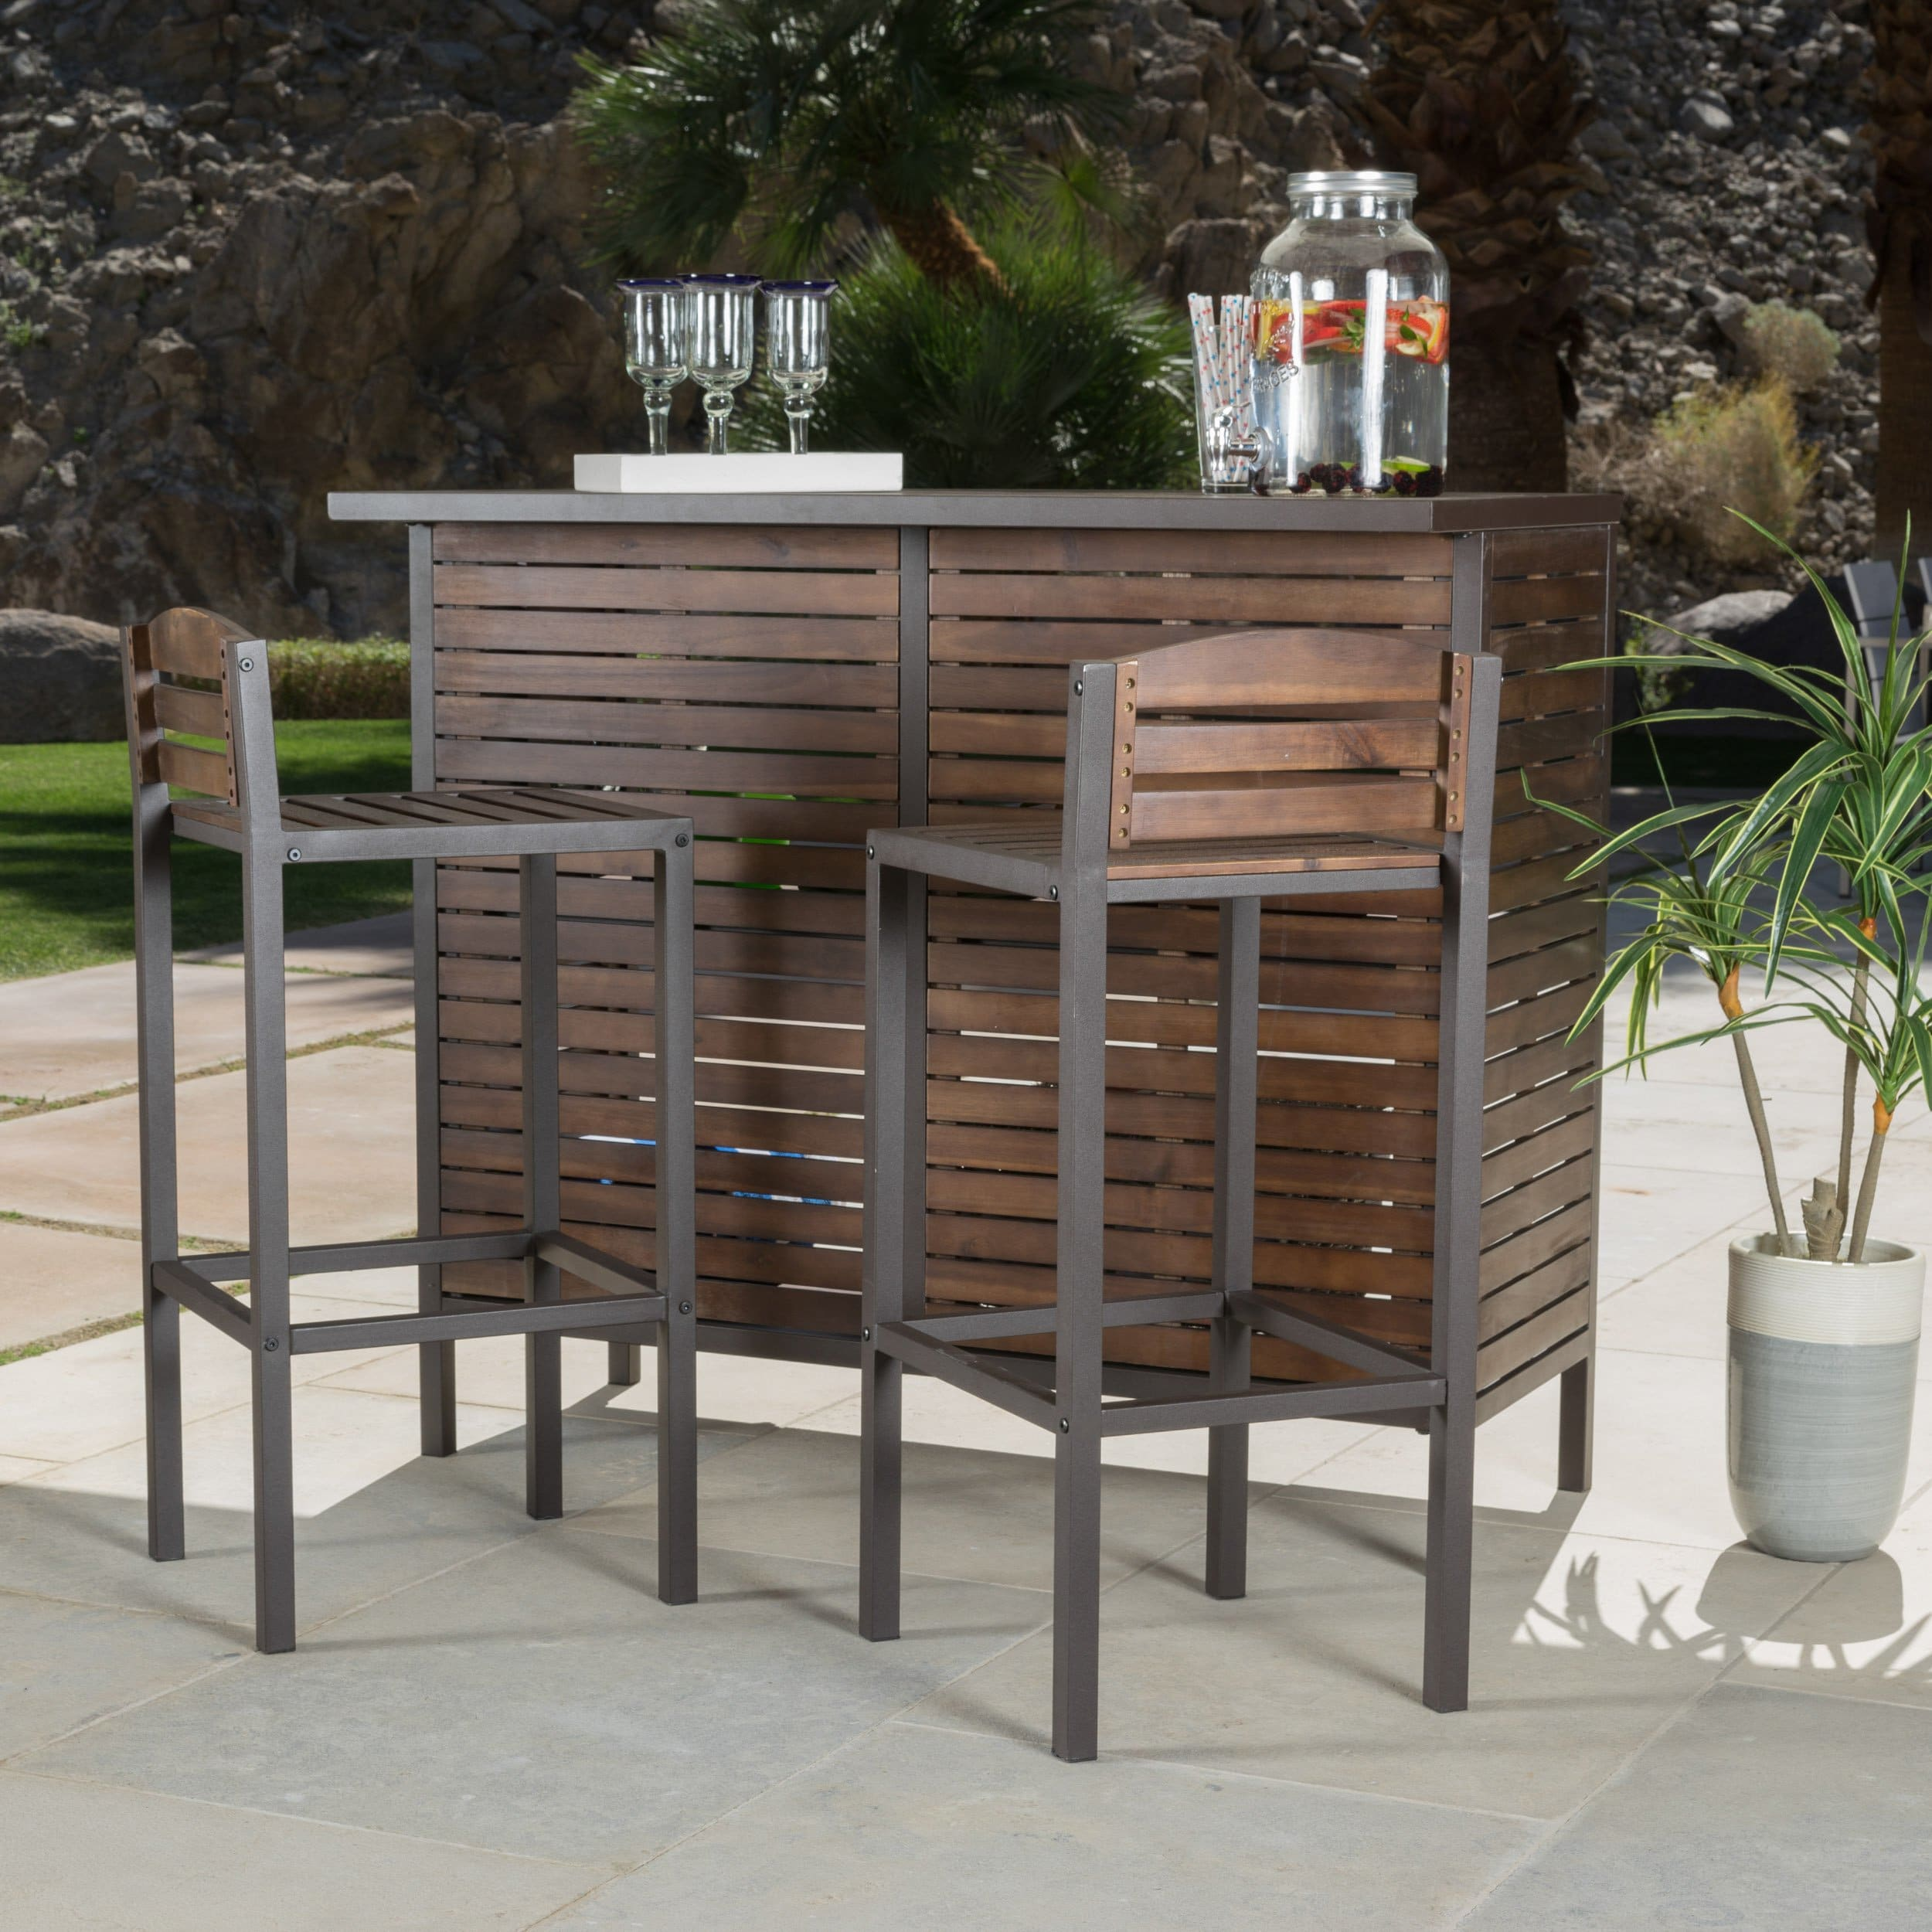 milos outdoor piece acacia wood bistro bar set christopher knight home accent tables clearance free shipping today patio cover led battery table lamp small cherry coffee kitchen